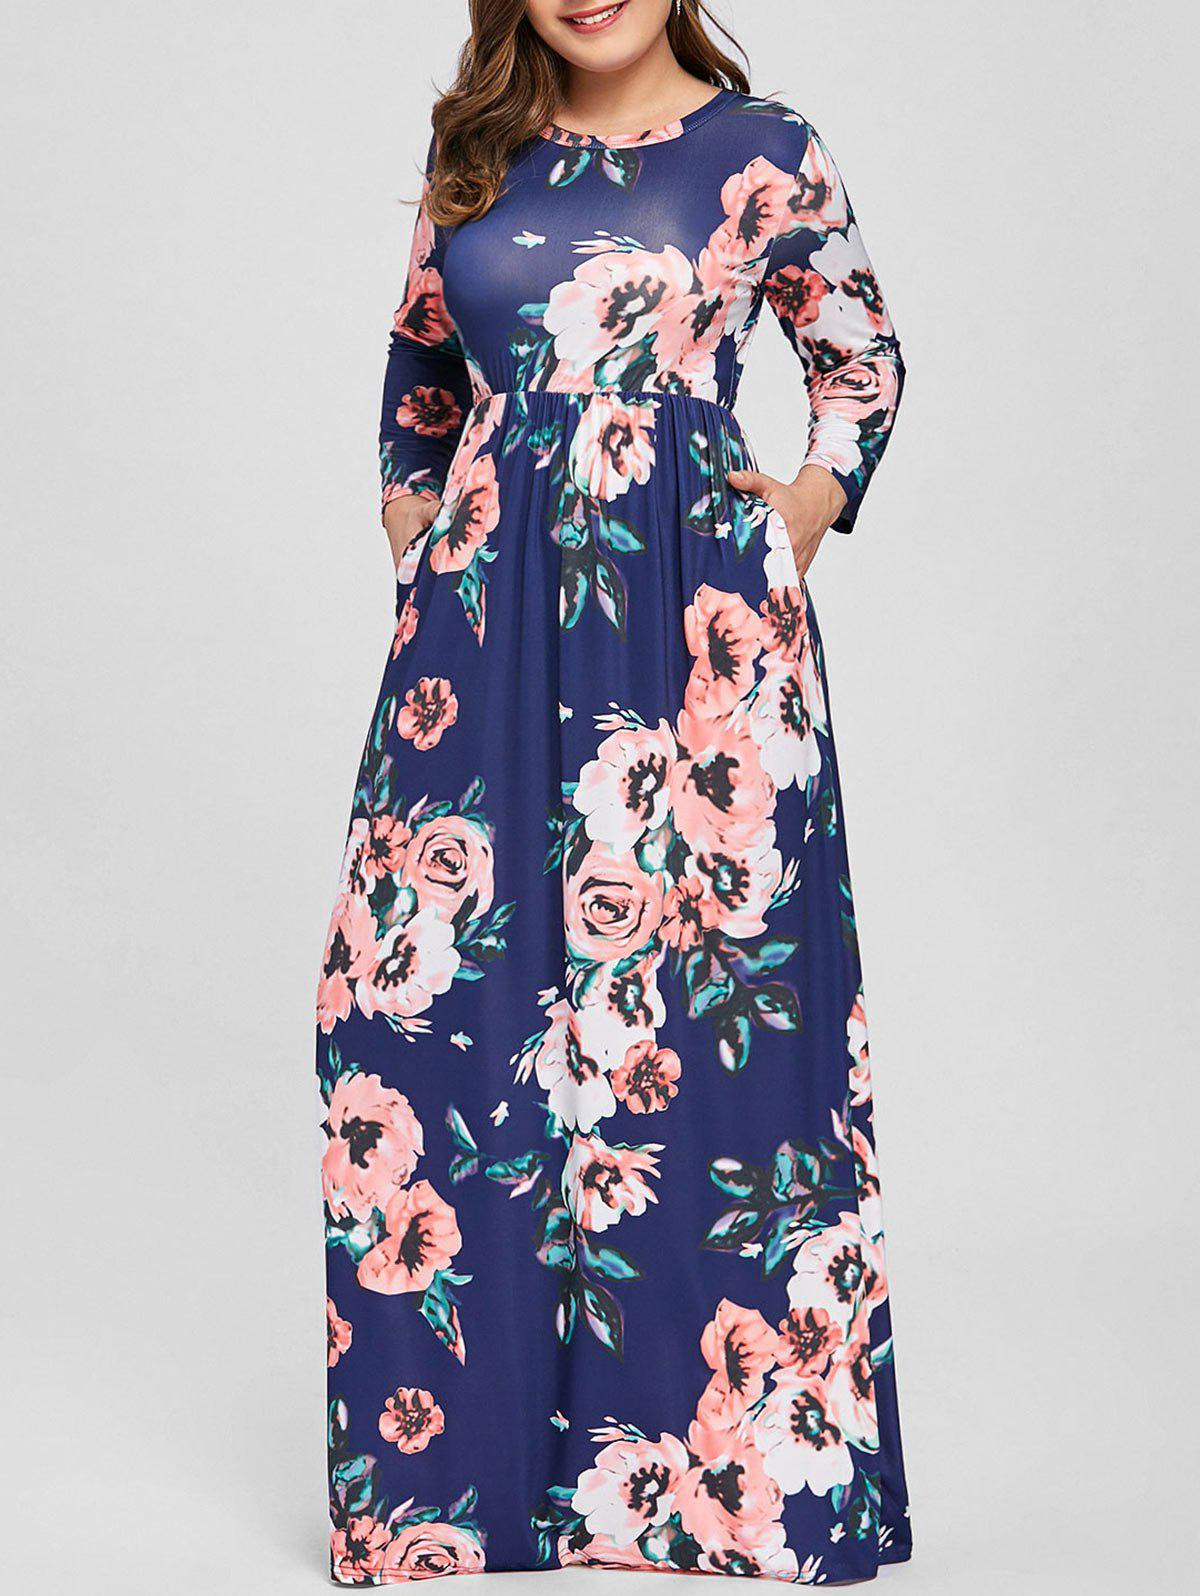 Fashion Plus Size Maxi Long Sleeve Floral Dress 81a438e1f